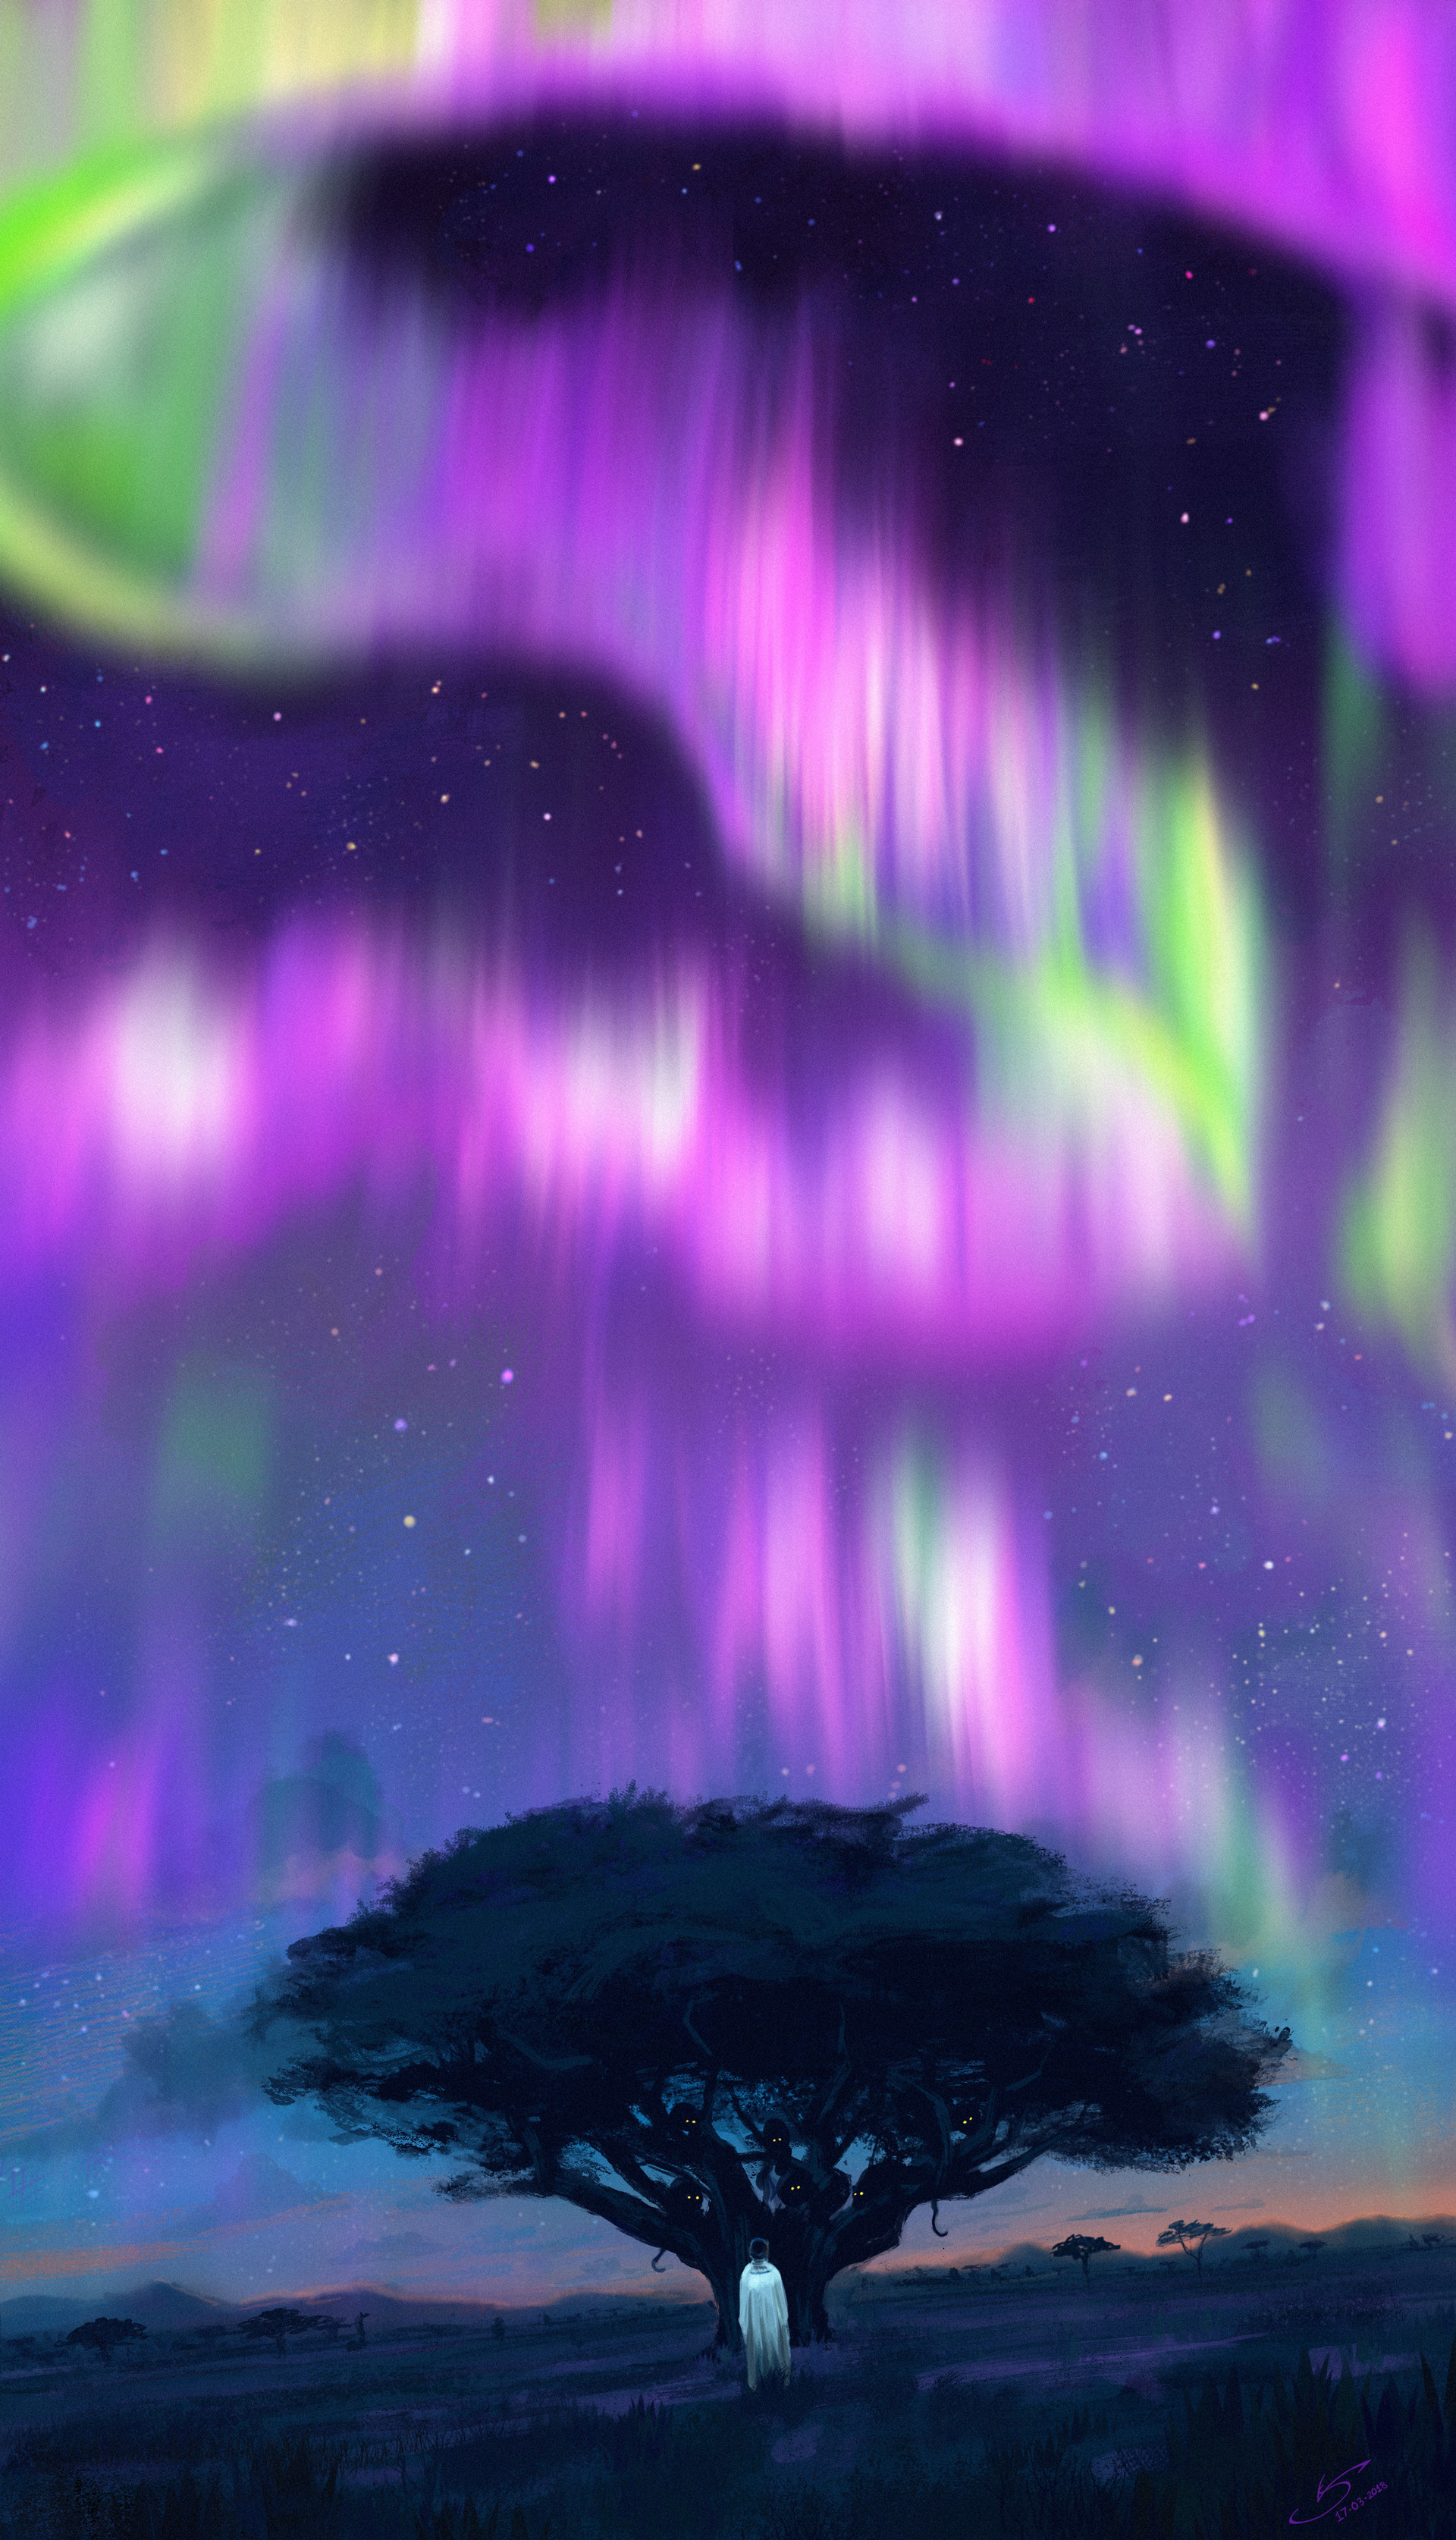 115104 free wallpaper 320x480 for phone, download images Northern Lights, Art, Night, Dark, Silhouette, Wood, Tree, Aurora Borealis 320x480 for mobile